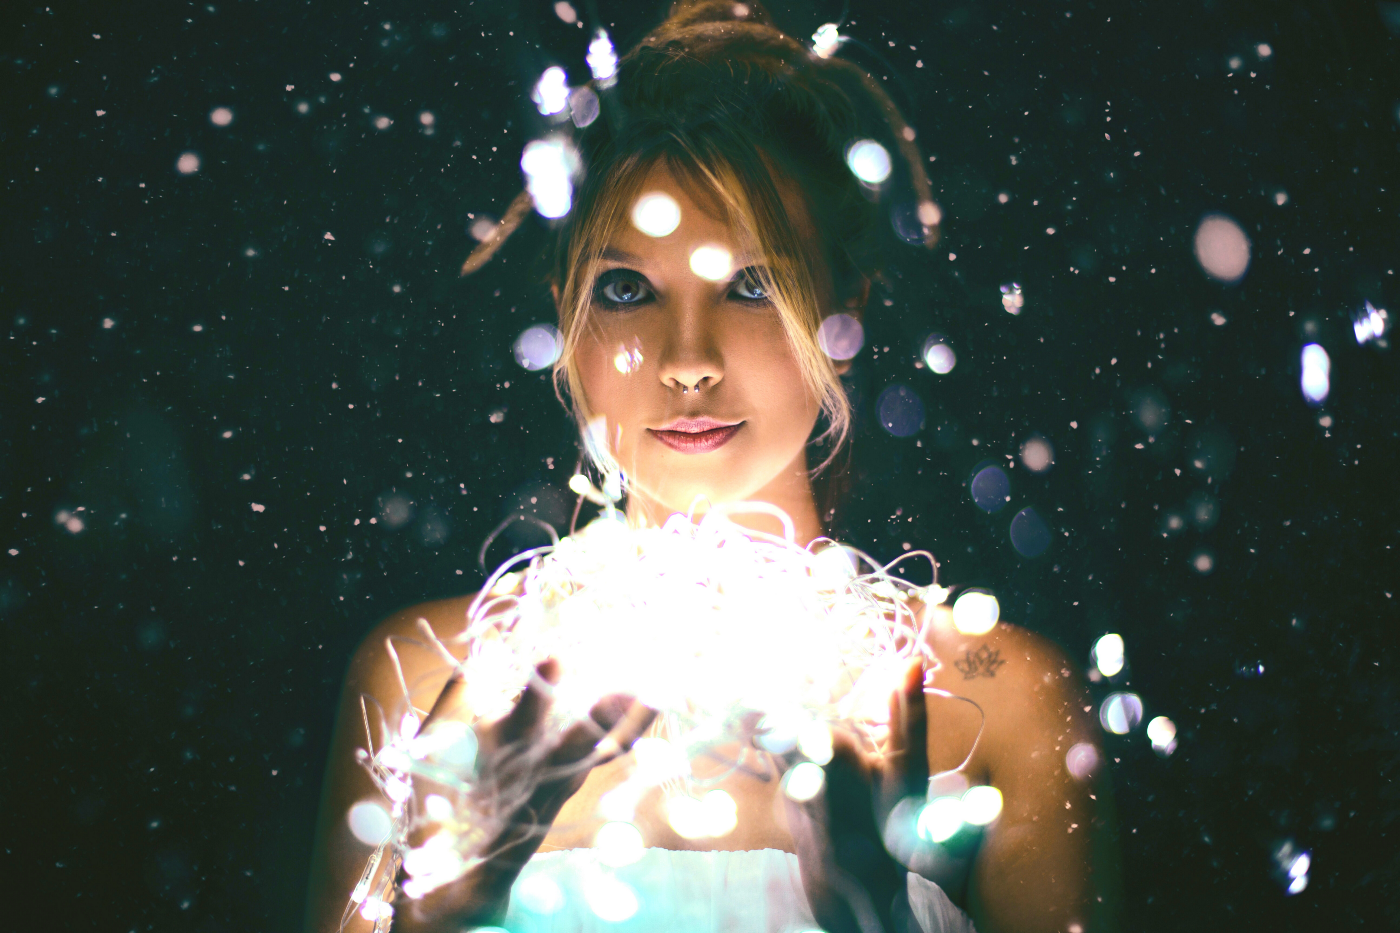 A woman in the dark holds fairy lights in both hands.